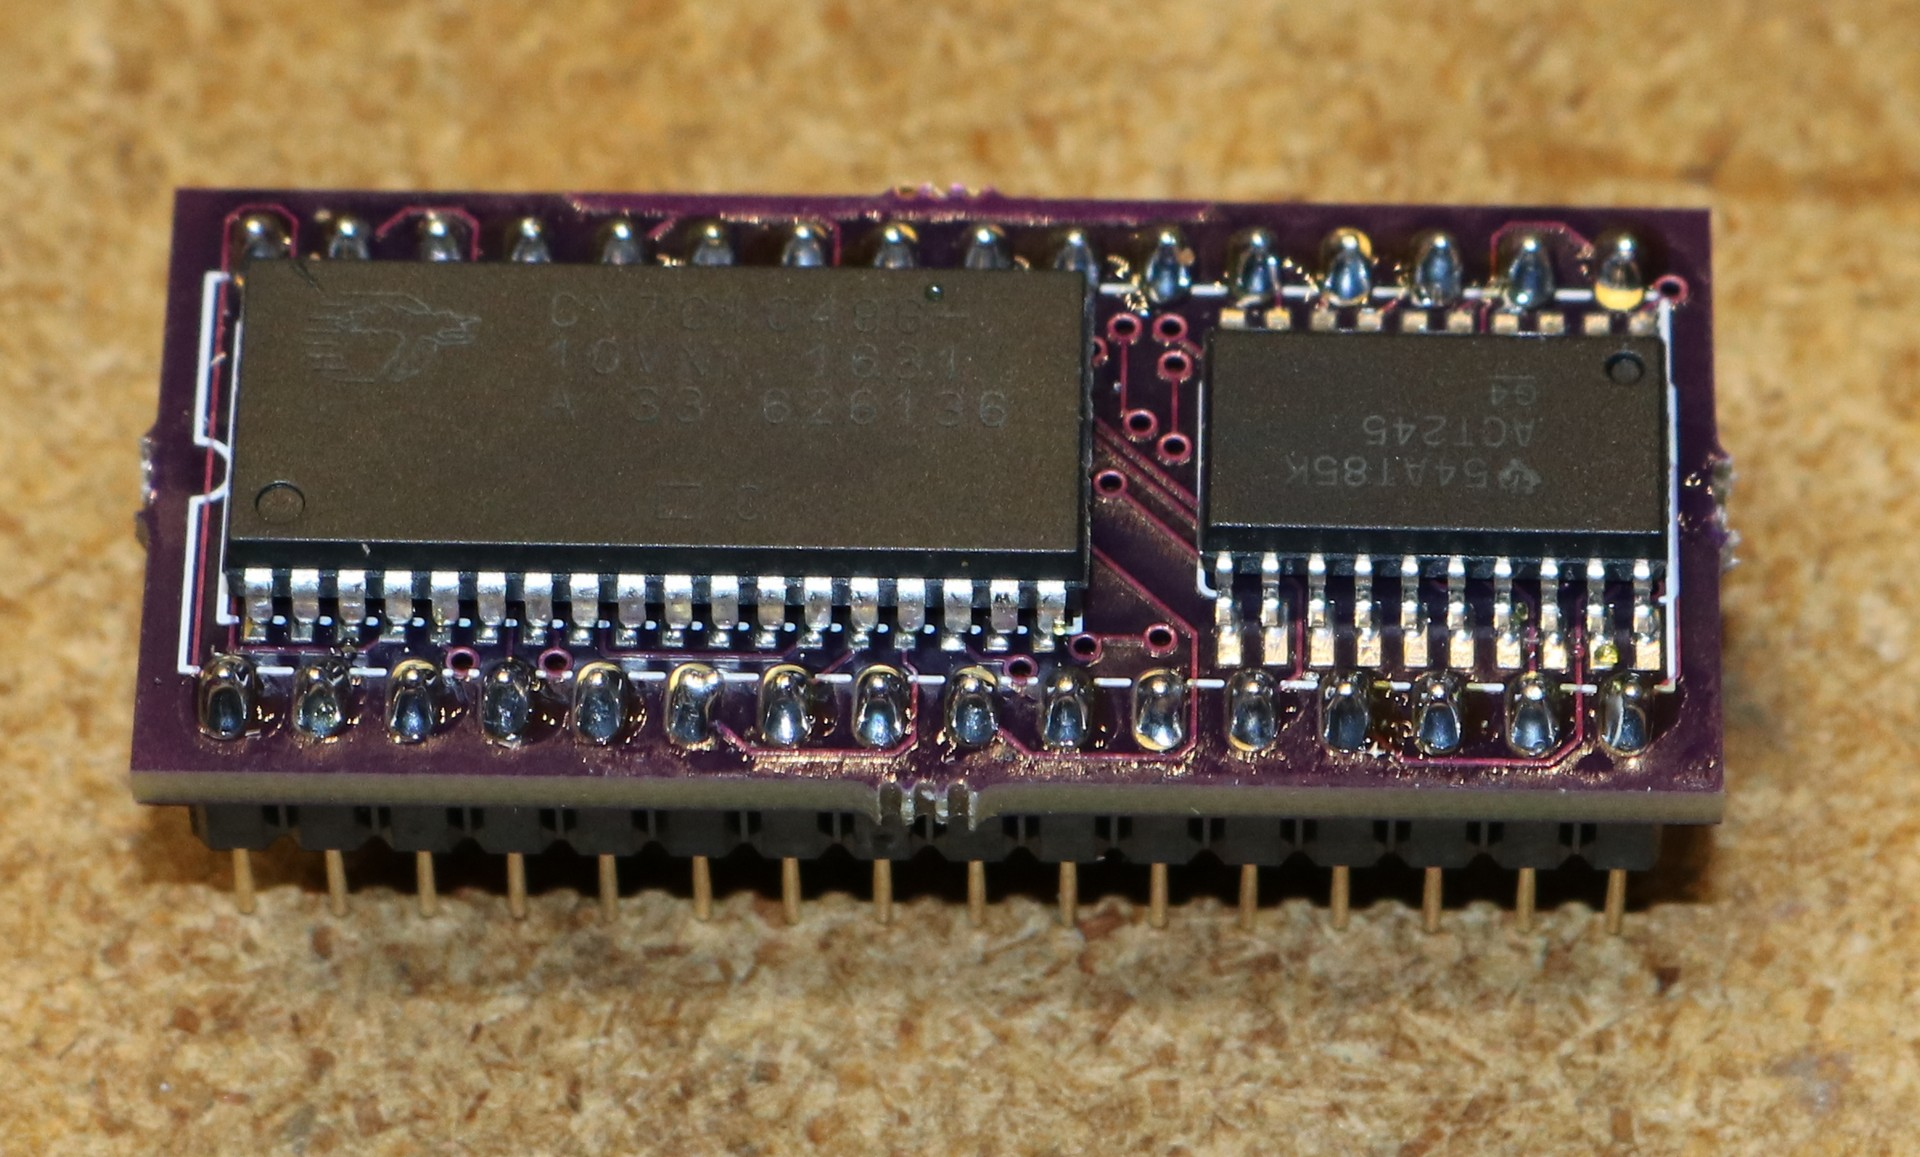 Uncategorized Dr Scott M Baker Voltage Regulator With Lt1086 Electronic Circuit Buffered Memory Adapter Completed Board